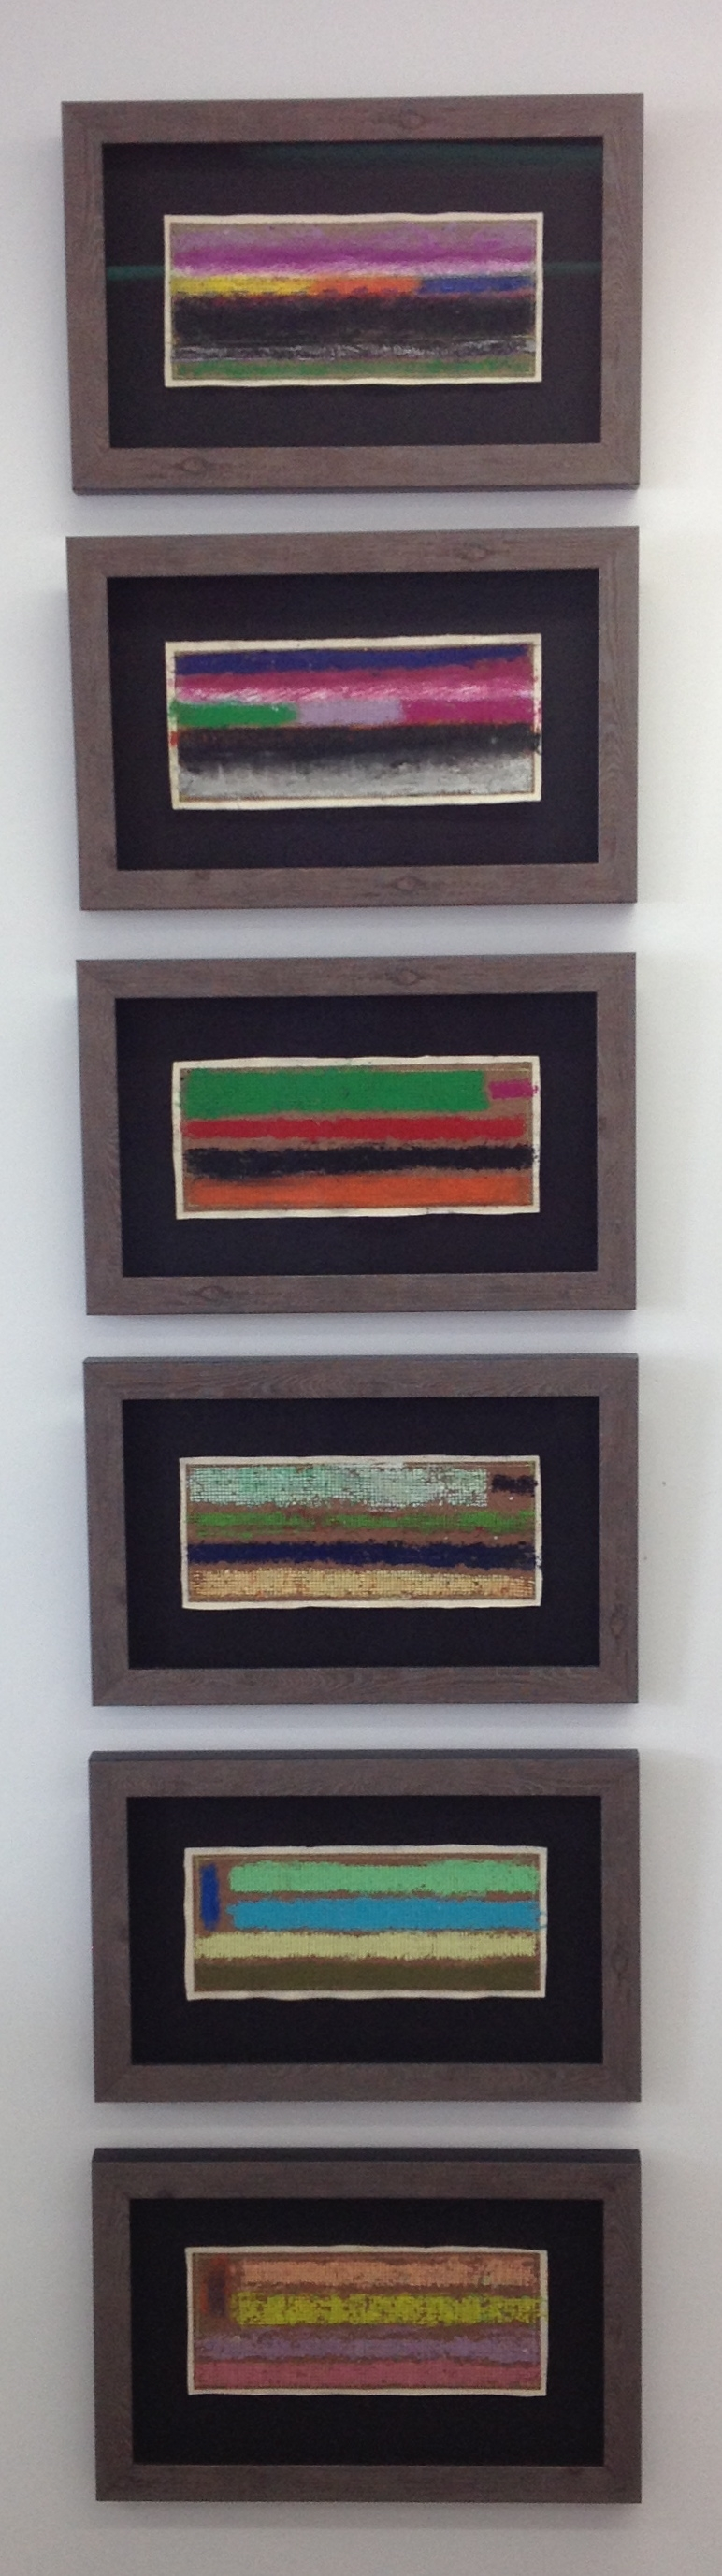 """ 6 Sequential Sandpaper Expressions""    2016    Oil Pastel (Hand Stitched on the top Image only) on Sandpaper  & Stitched to Canvas    Each Image is    11 1/4"" X 5""      Framed Size  17 1/4"" X 11"""